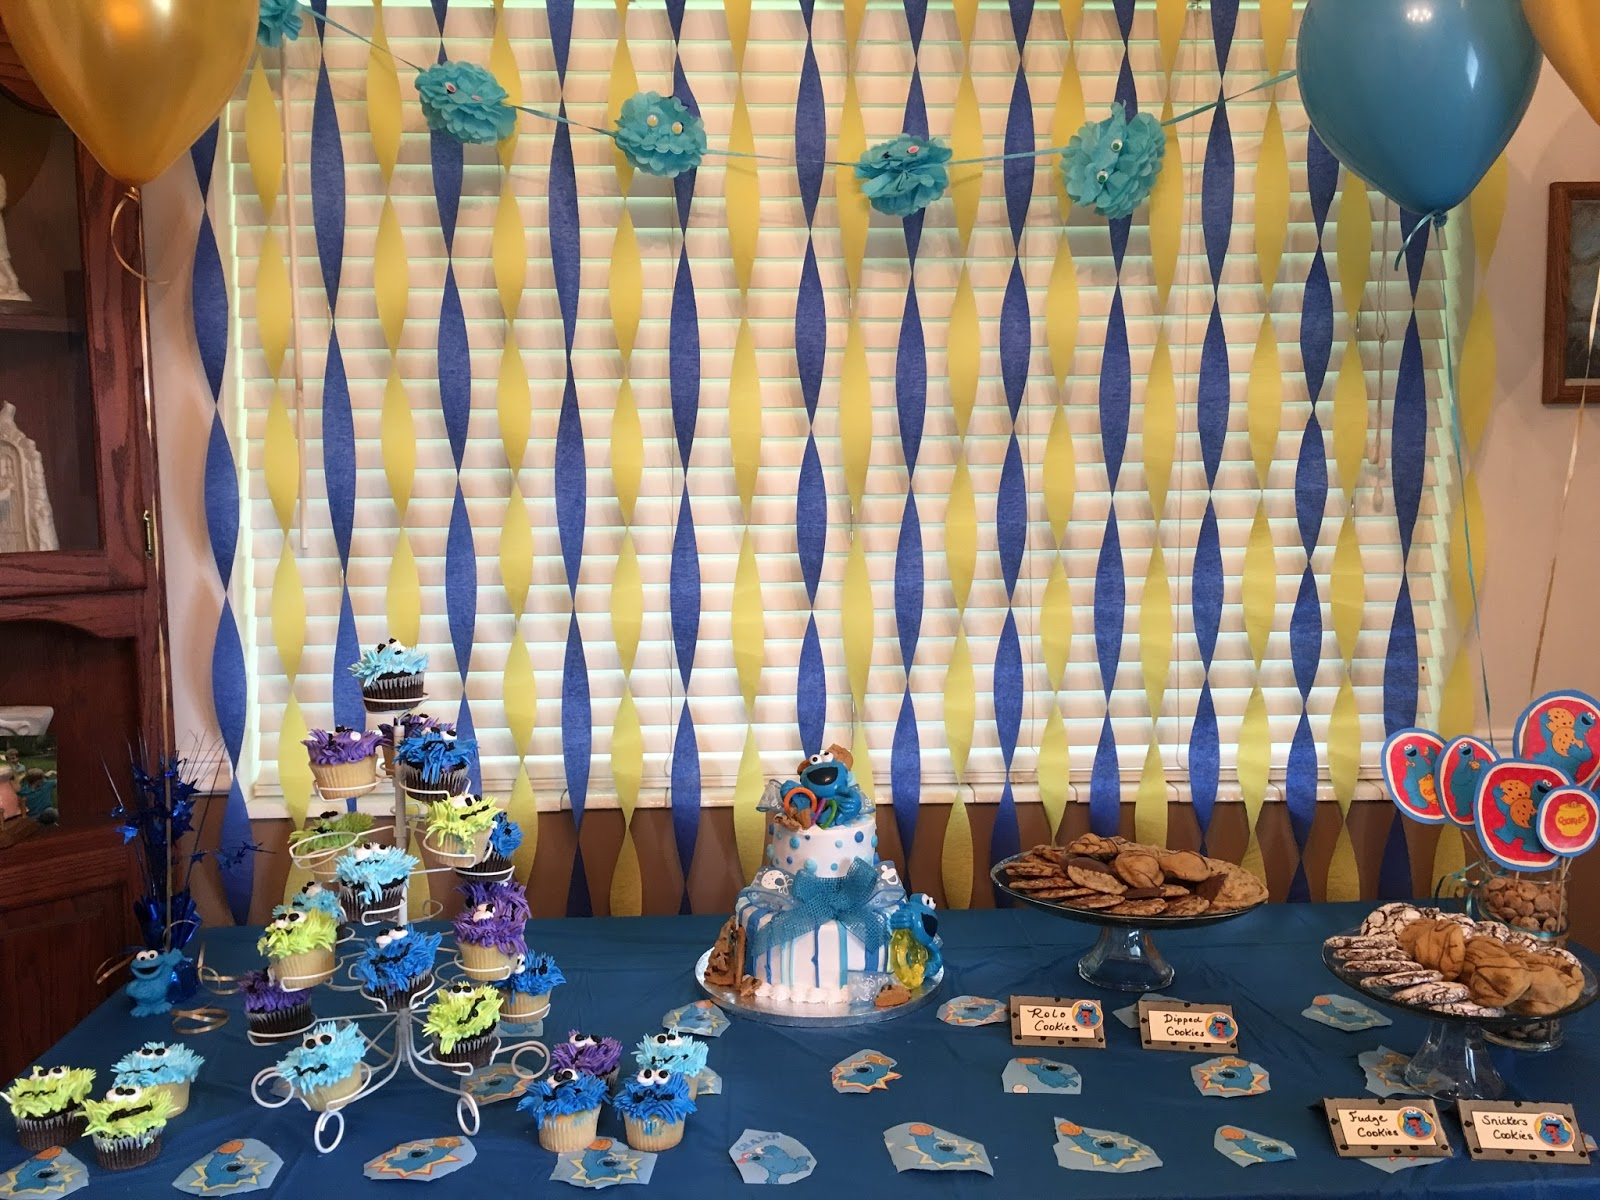 I had so much fun with the decorations! I did Cookie Monster blue and gold crepe paper down the window then after Iu0027d fluffed out the crepe paper balls ... & Julie Coulter Bellon: How I Did A Cookie Monster Baby Shower